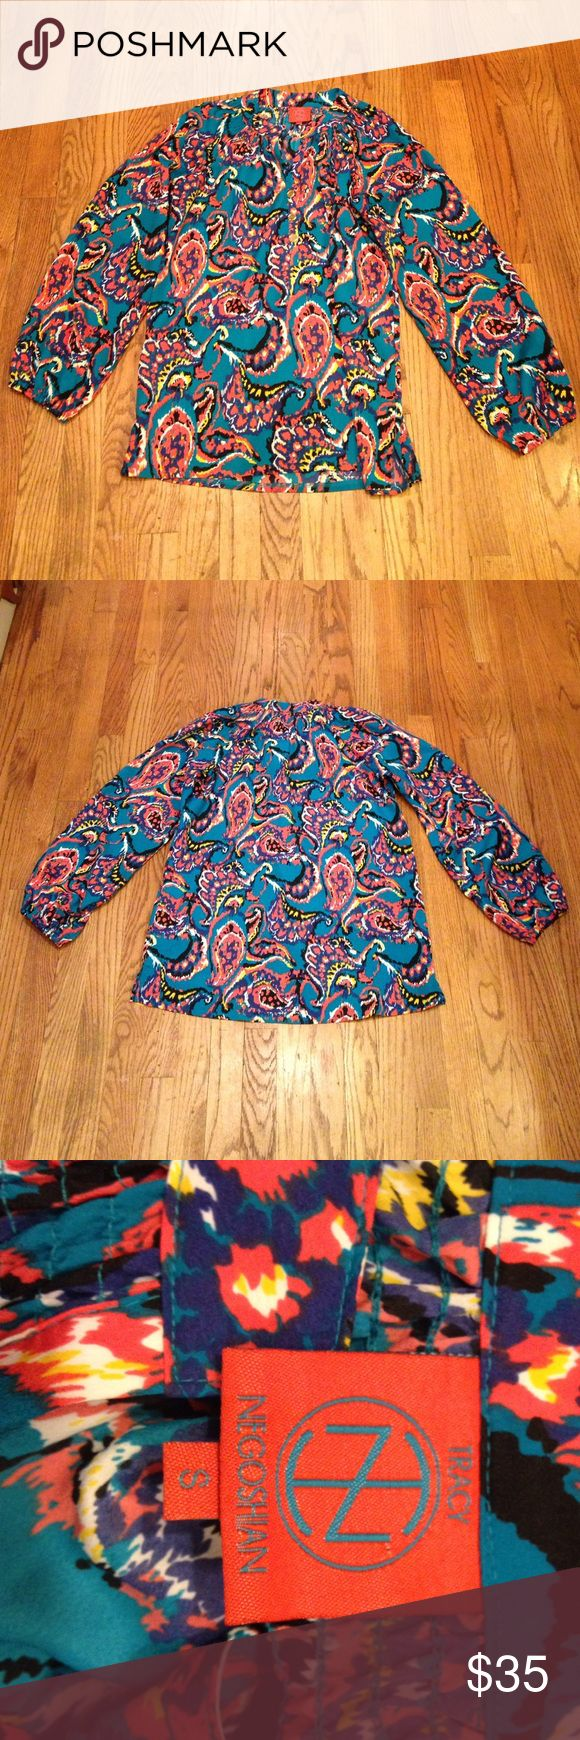 """Tracy Negoshian Tunic Teal Tunic w/ colorful (orange, yellow,blue, white& black) graphic paisley design. Long sleeves & elastic at wrist.  V-neck w/ stand up collar &  smocking at neckline. 3 gold colored buttons on front. Measures 28"""" from top to bottom. Sleeves measures 25"""" shoulder to wrist. NWOT Tracy Negoshian Tops Tunics"""